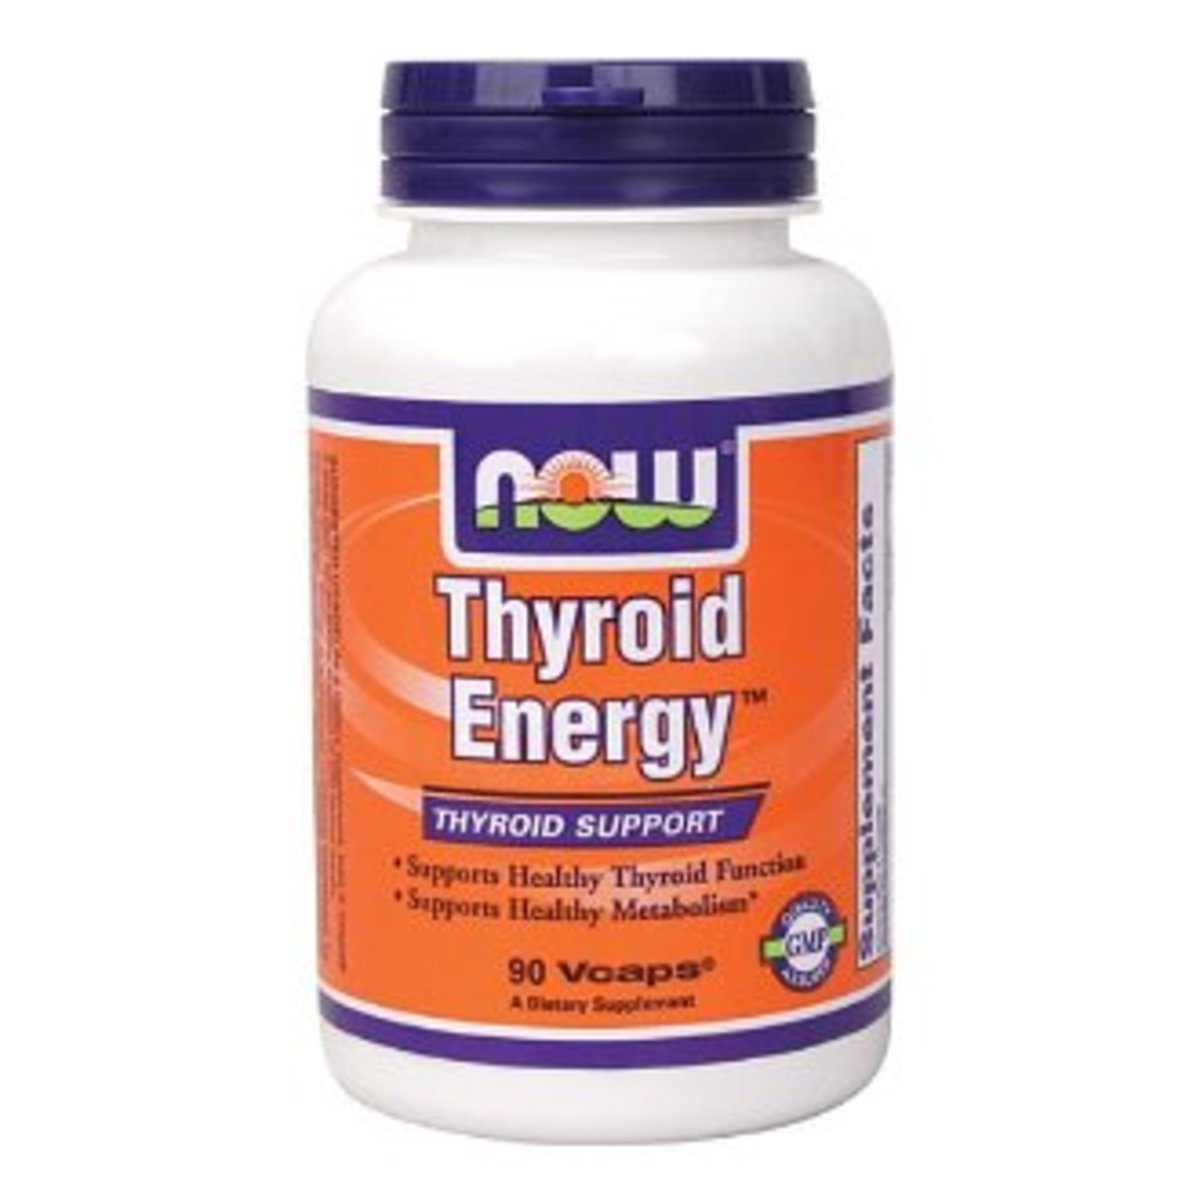 Thyroxine side effects and hormone replacement therapy can sometimes be avoided altogether through healthier habits and thyroid boosting natural supplements like this one.